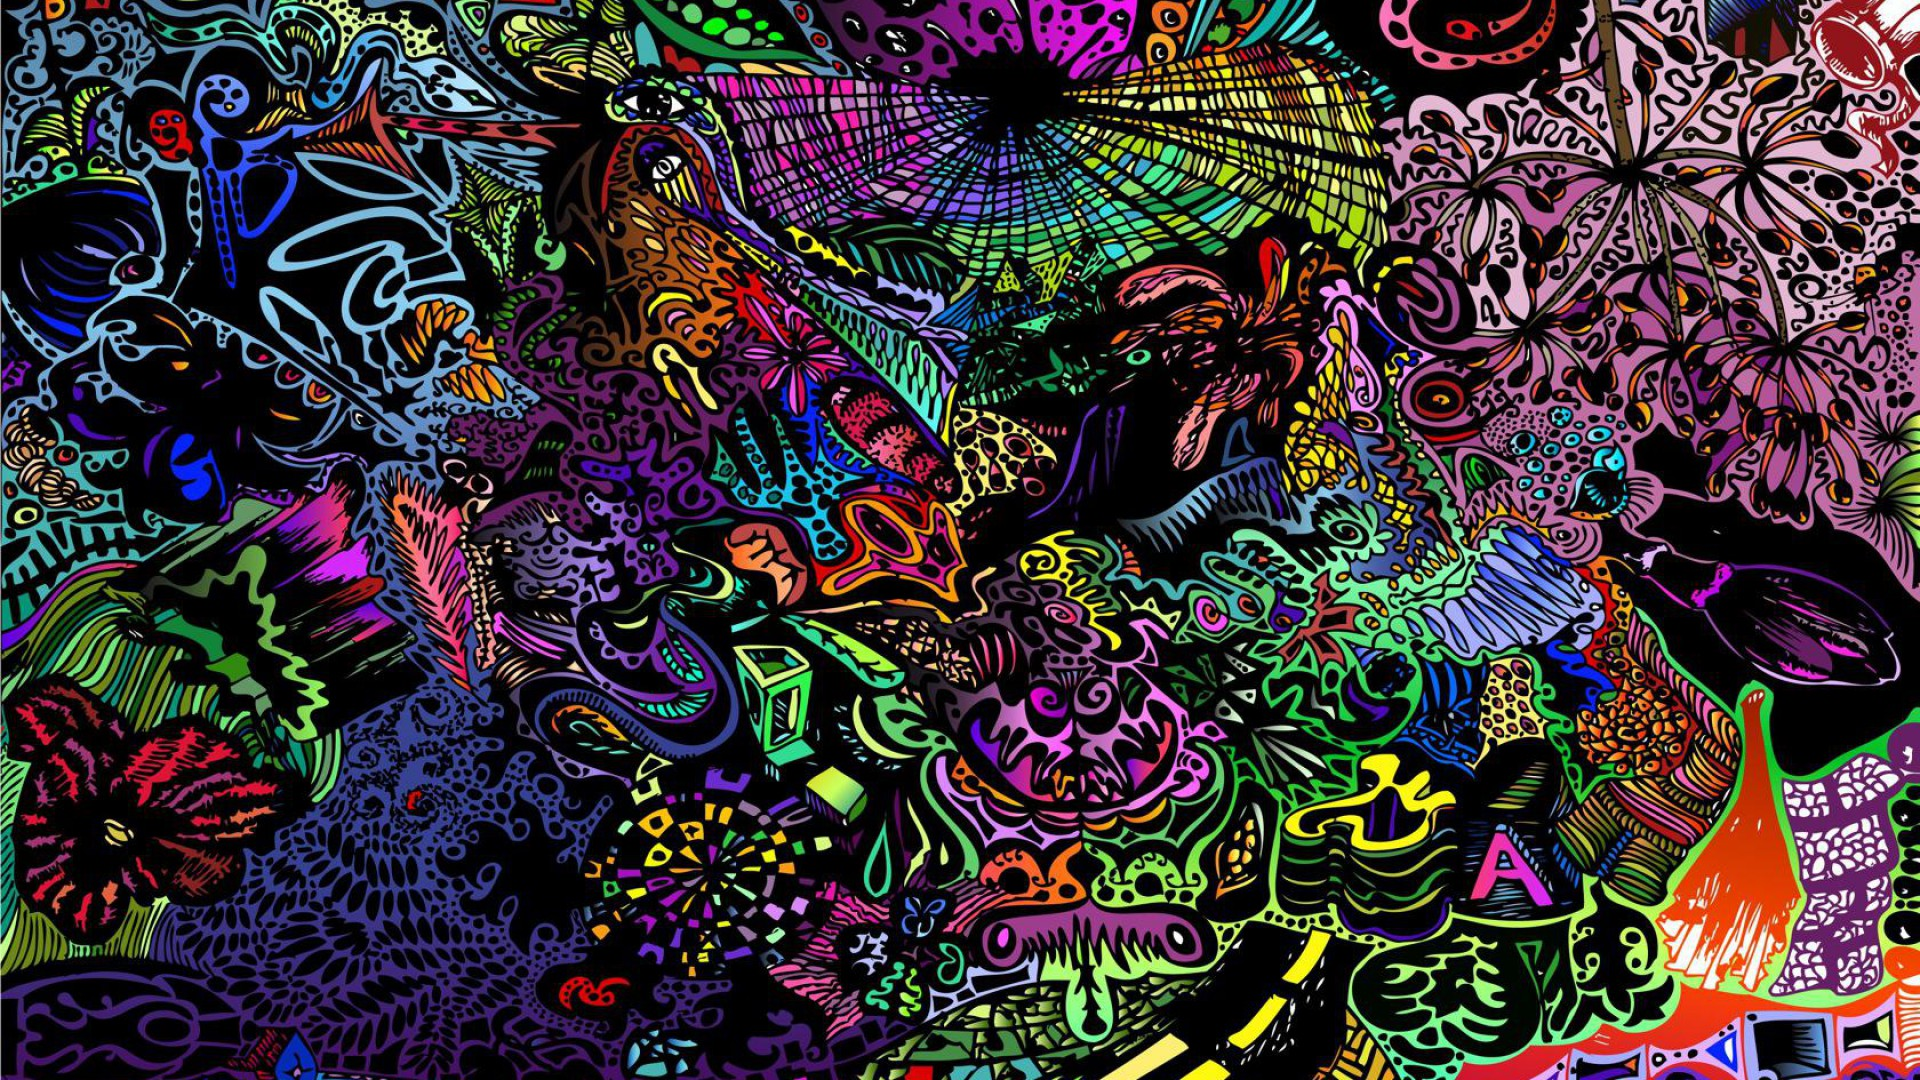 Sokilin design wallpapers trippy wallpapers hd - Trippy Wallpapers Hd Space Free High Definition Unique Hd Wallpapers